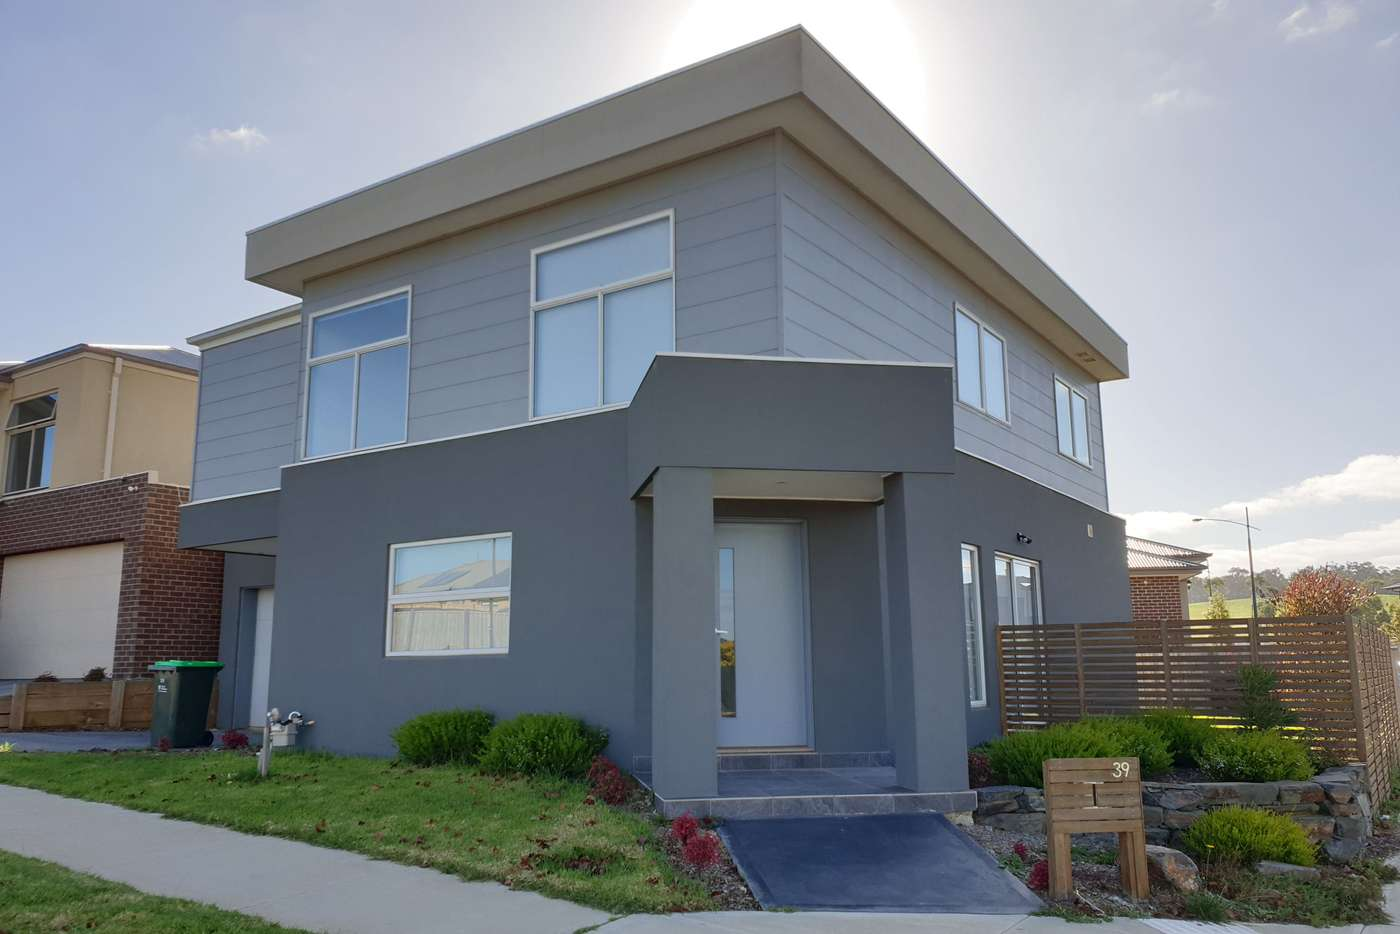 Main view of Homely house listing, 39 Marley Boulevard, Doreen VIC 3754